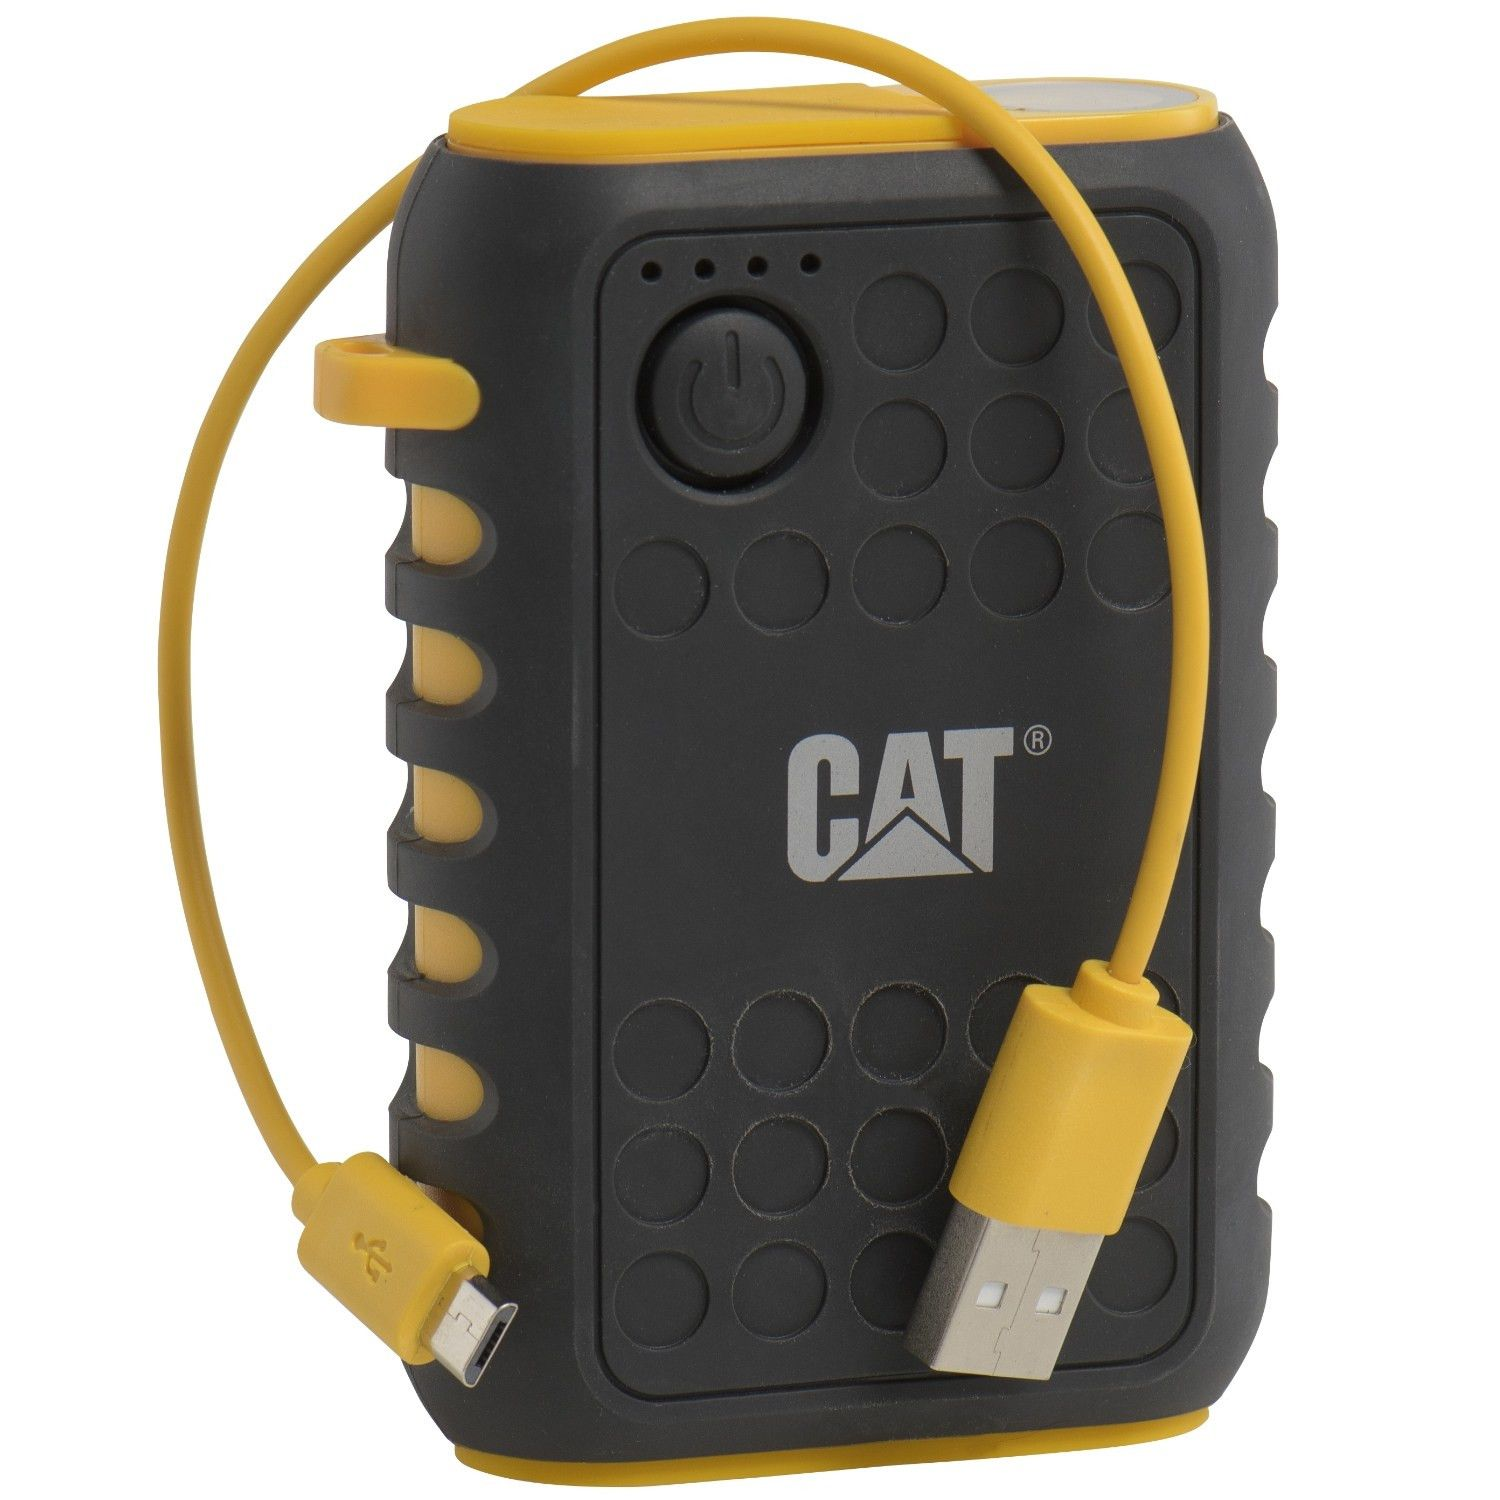 Baterie Externa (Powerbank) CAT Active Urban, IP65 Rugged, 10000 mAh, Incarcare rapida, Negru/Galben